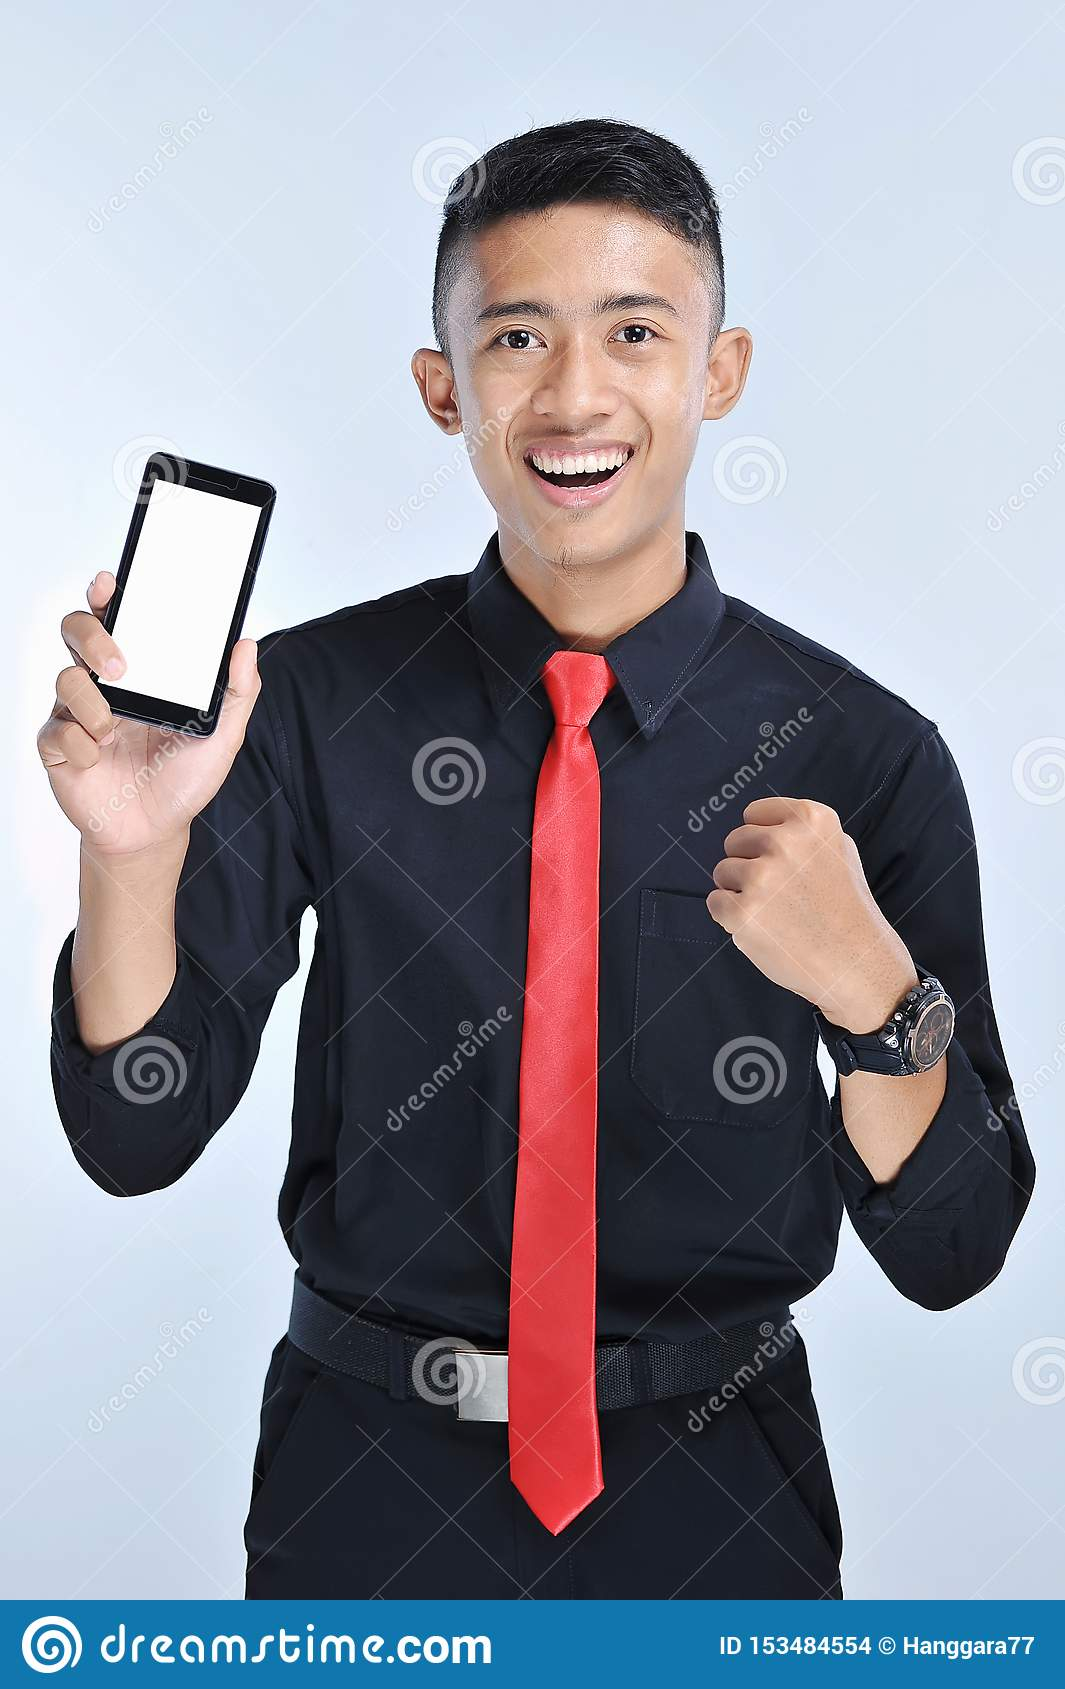 Success winner business man winning on cellphone app. Cheering business man looking at smartphone online gaming challenge or work